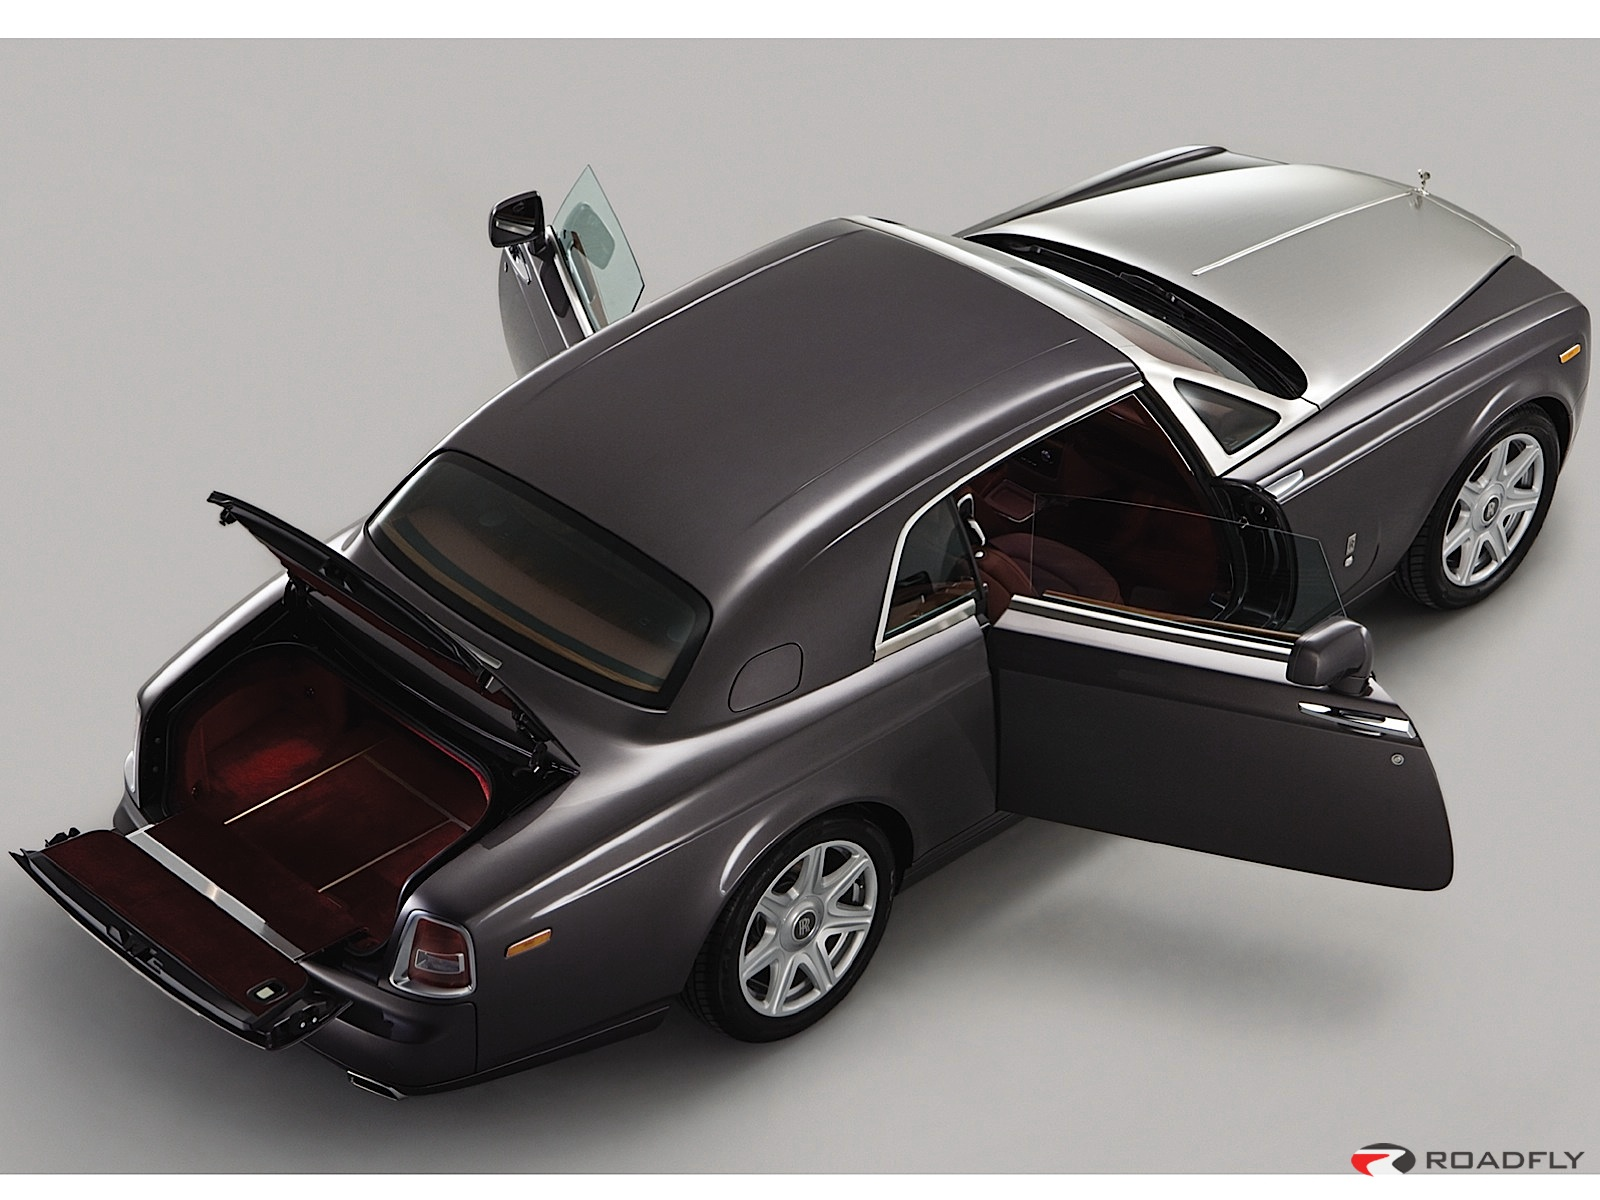 Rolls-Royce Phantom Coupé image #7